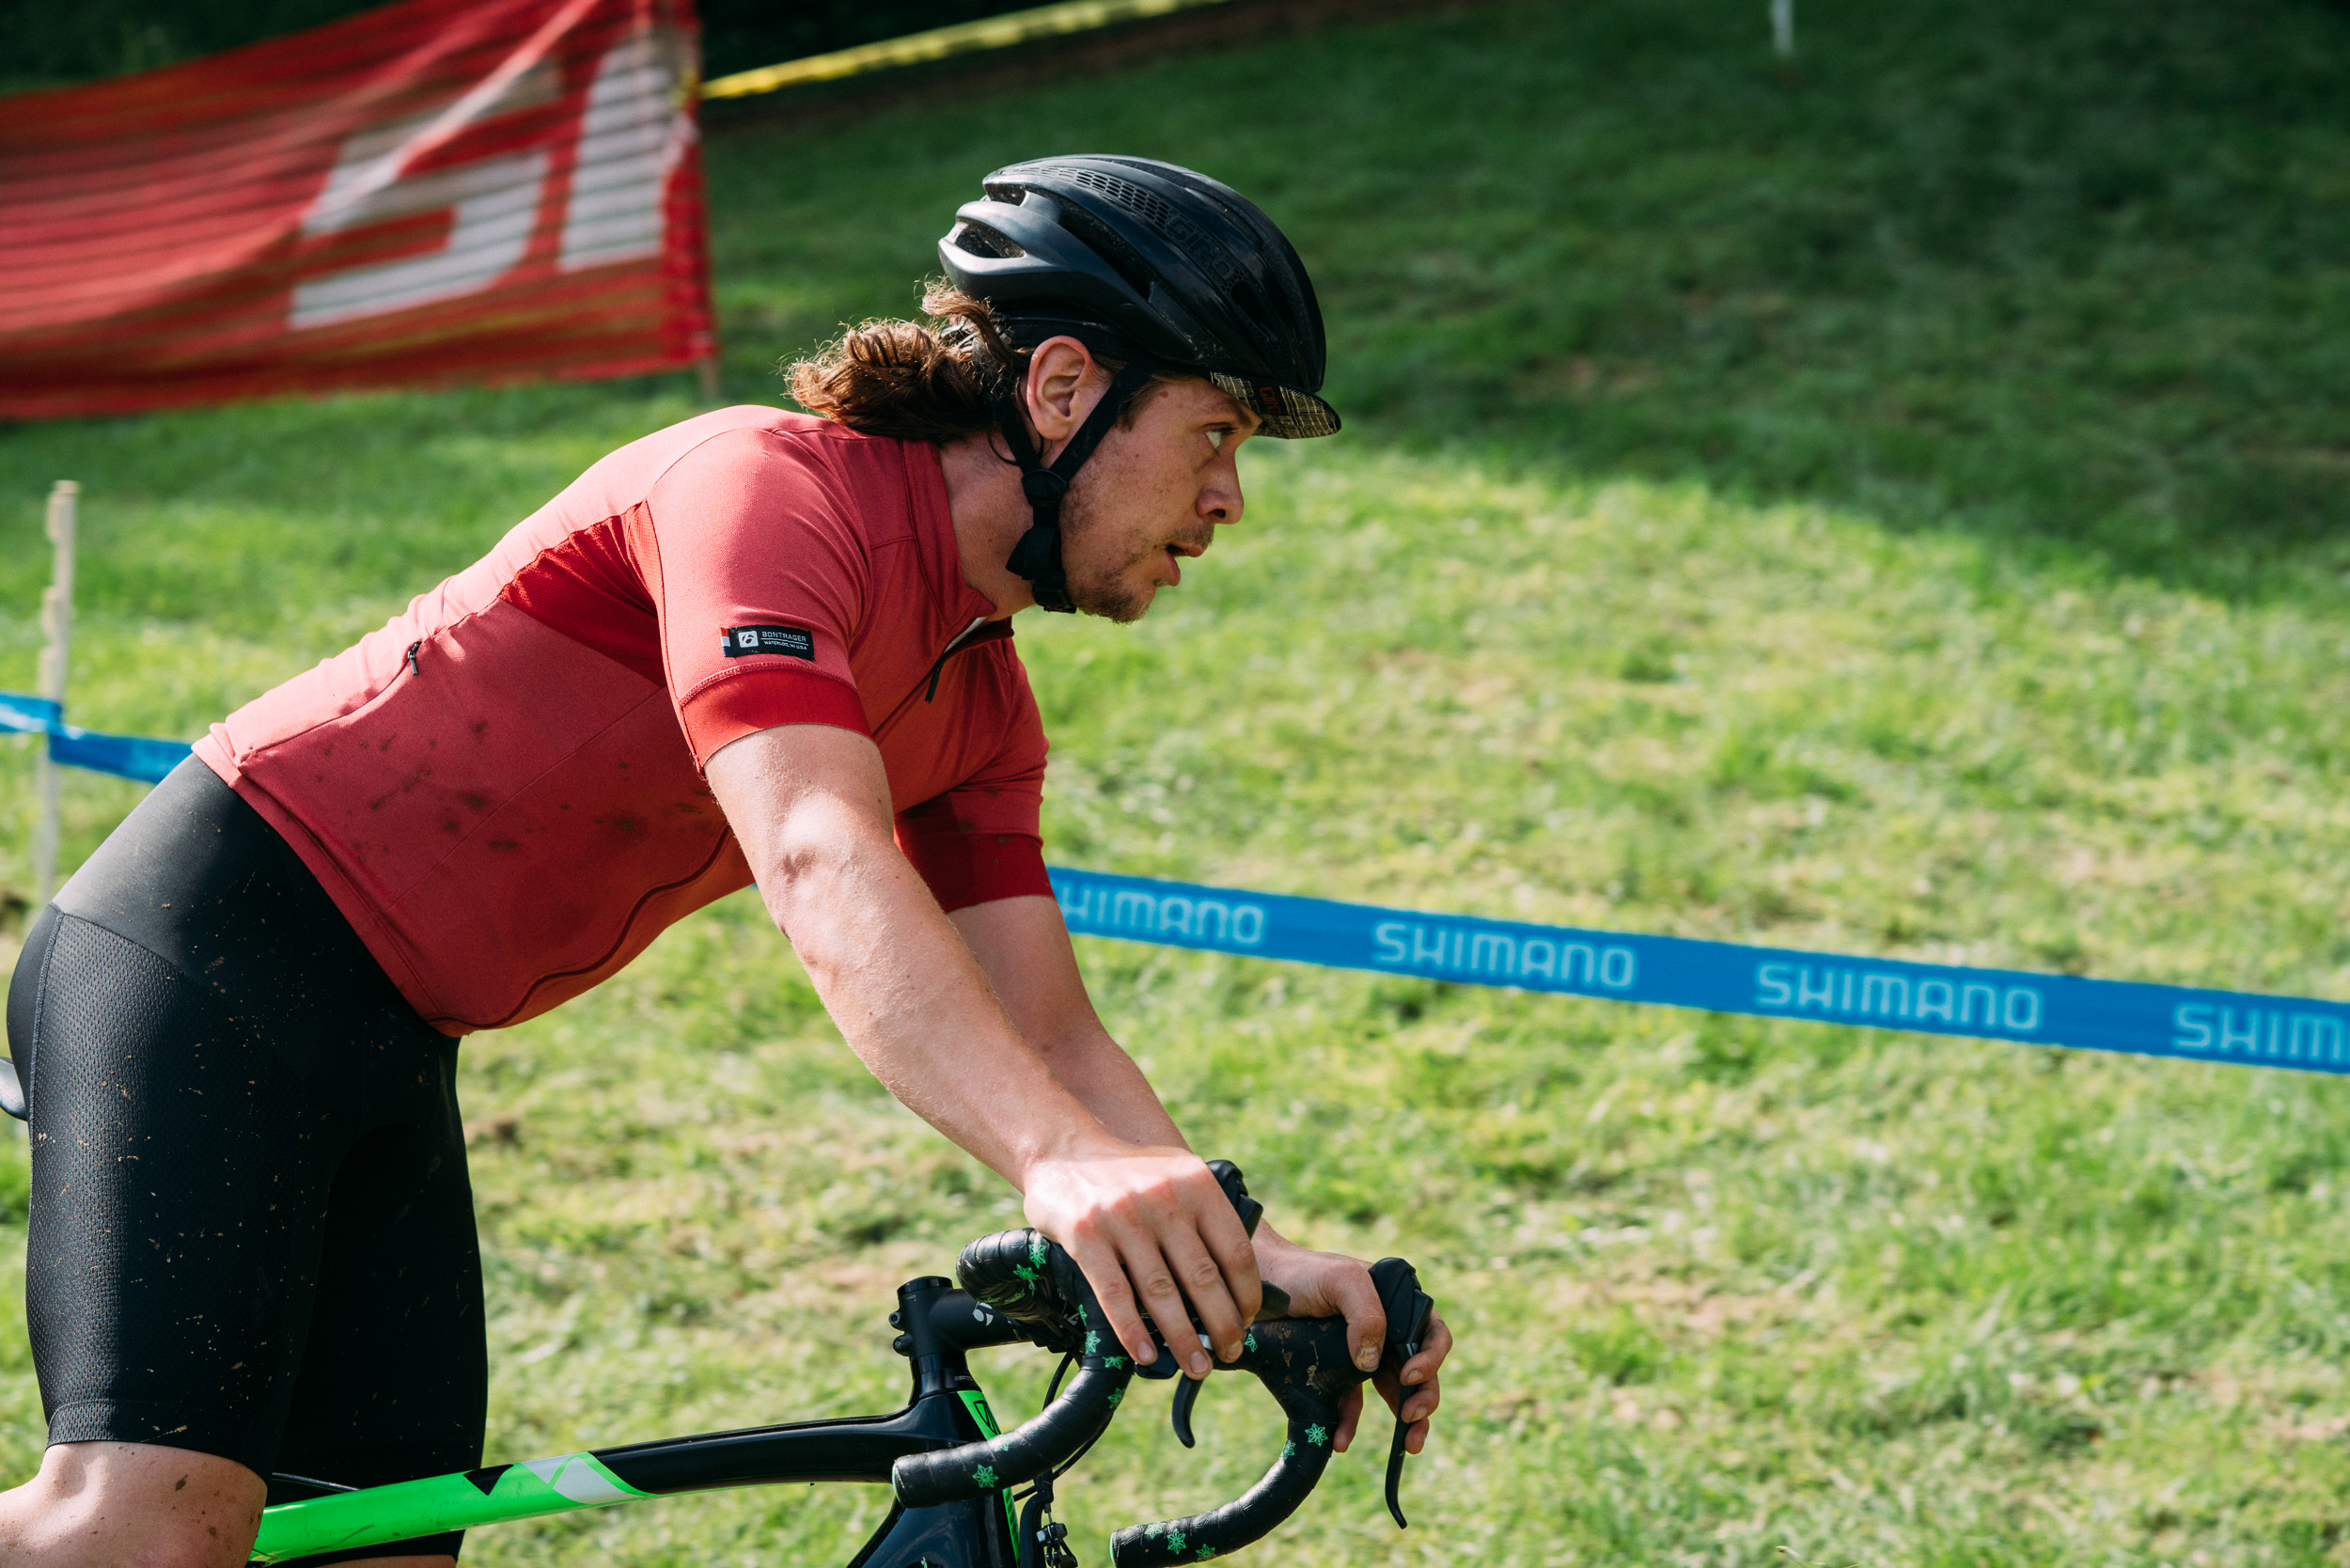 photo-rhetoric-to-be-determined-nittany-cyclocross-1188.jpg